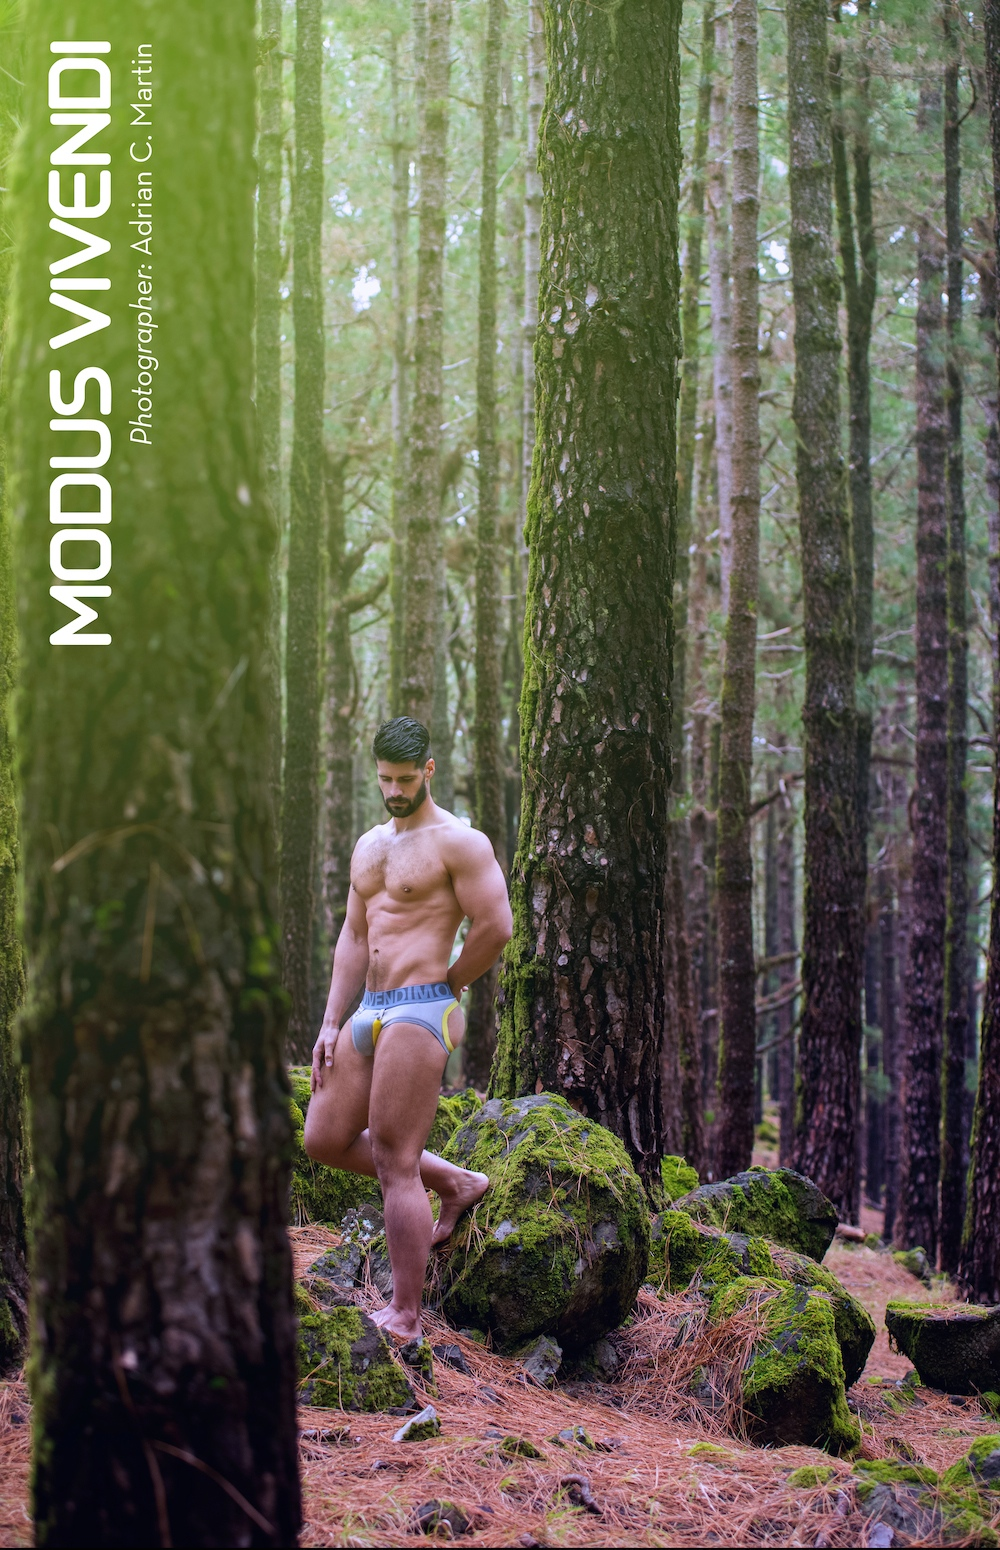 Model Fran Otero photographed by Adrian C. Martin - Modus Vivendi Bear Line campaign